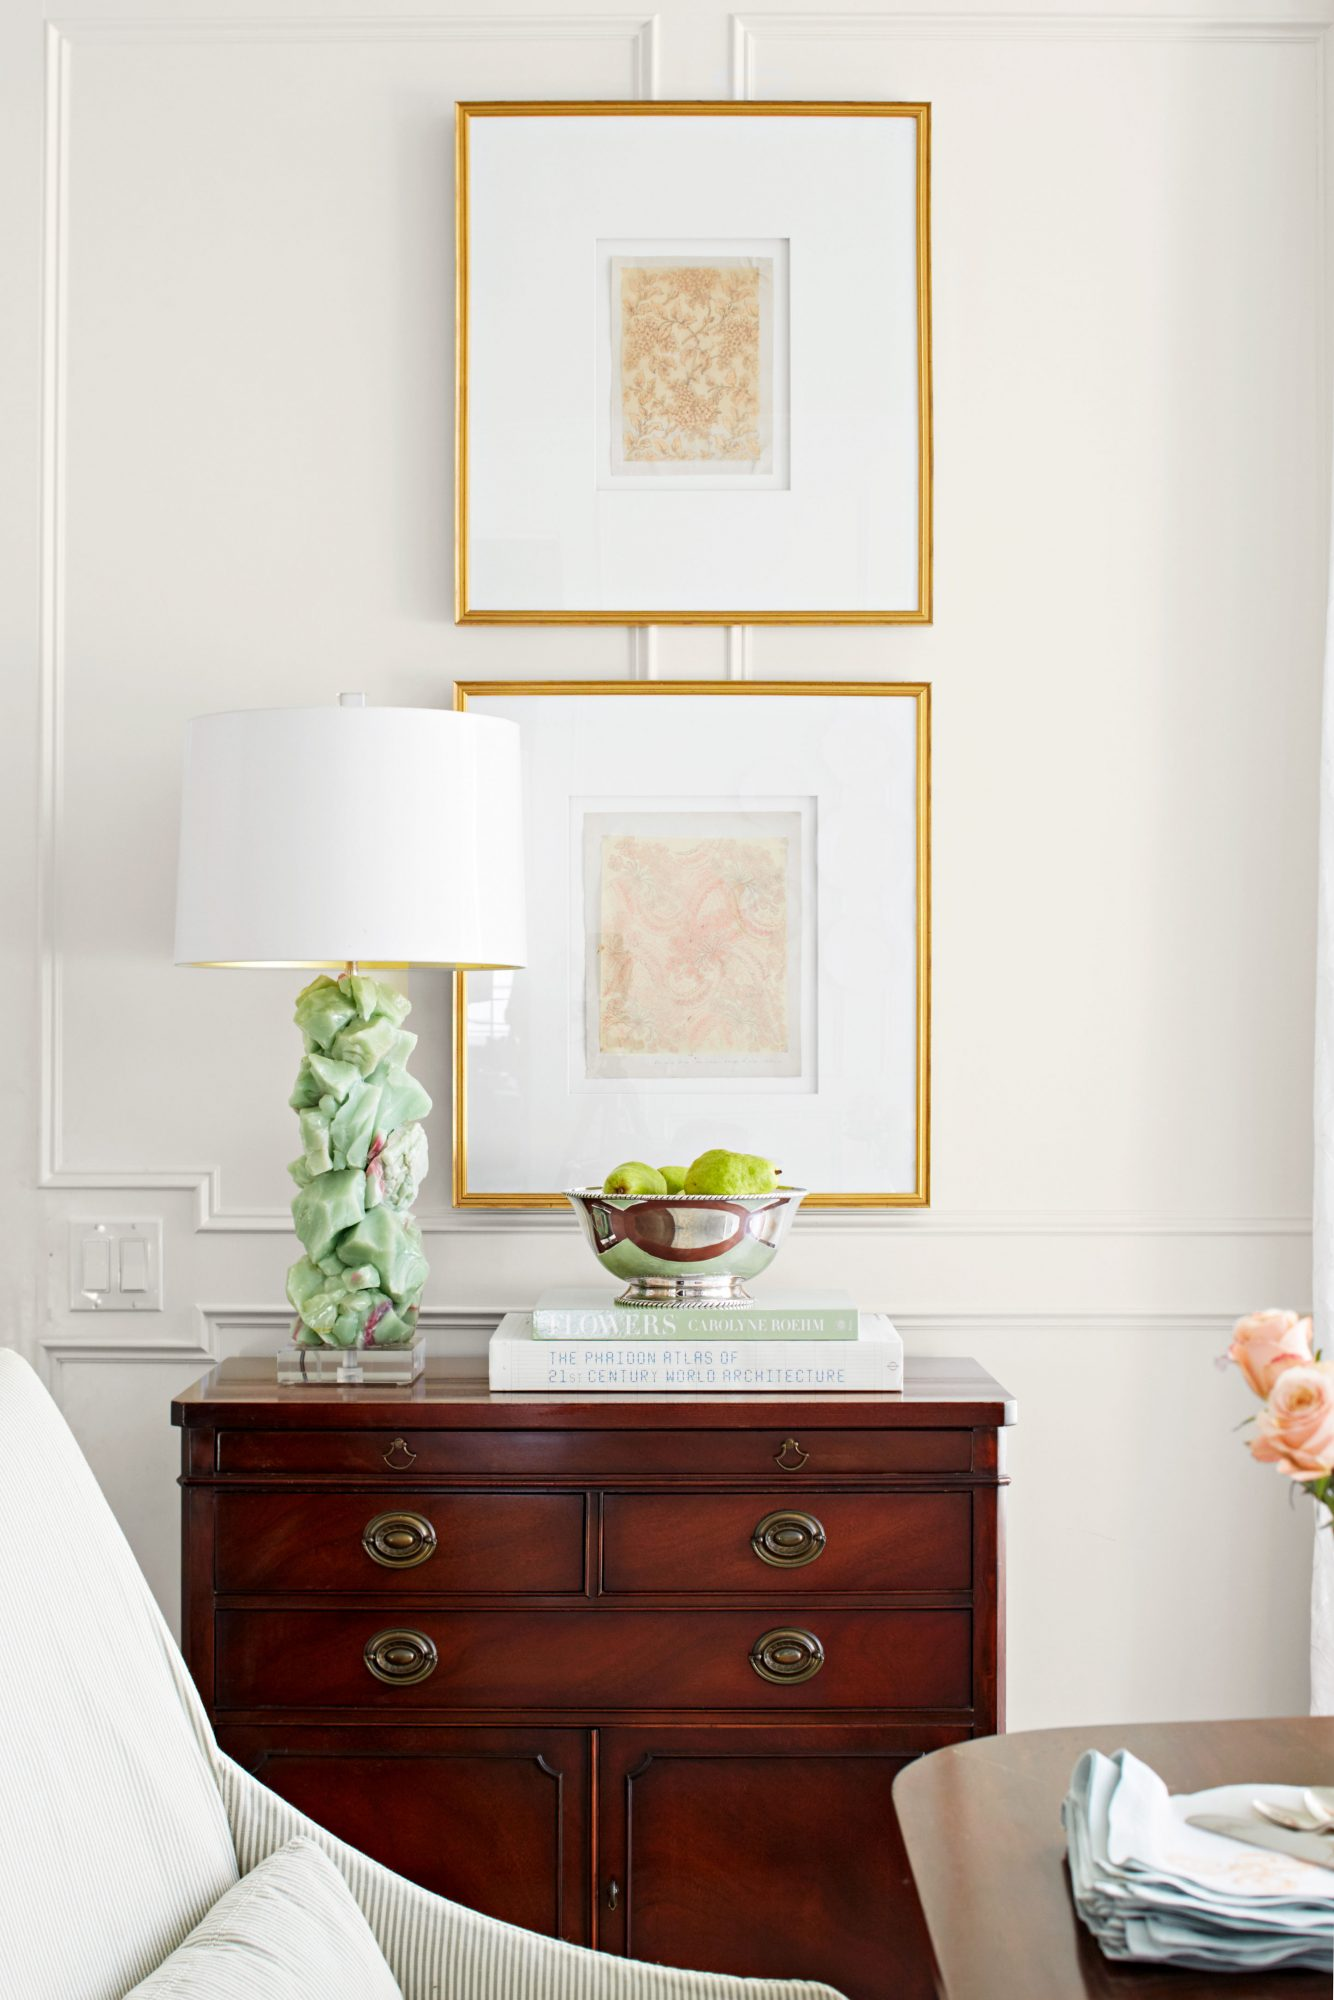 Small Sideboard with lamp and art in formal dining room